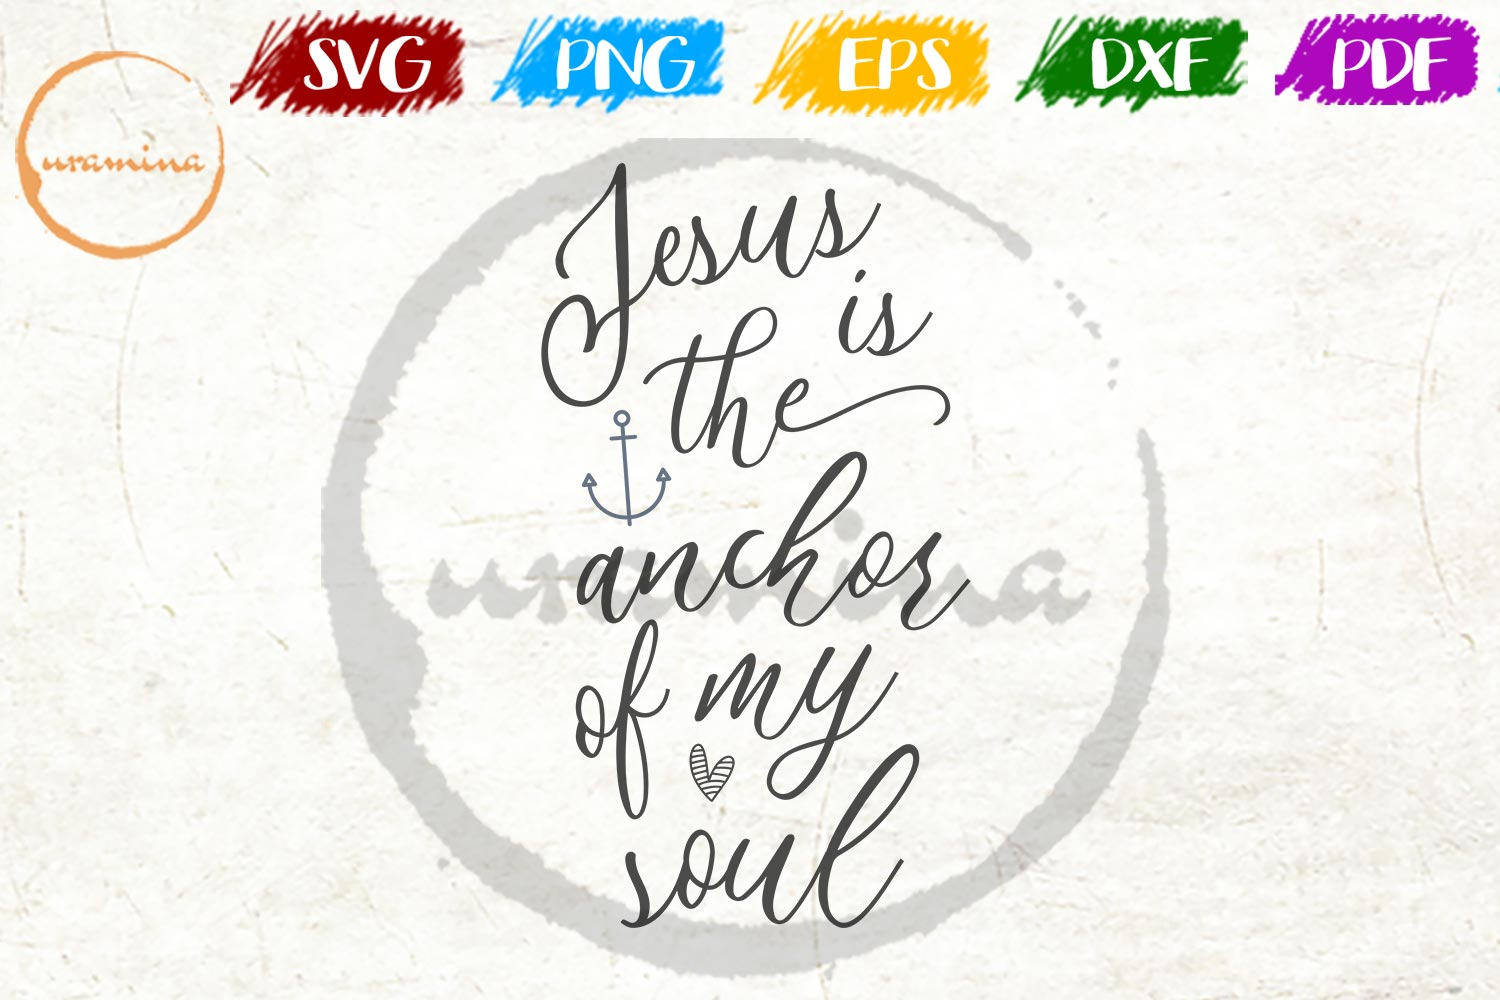 Download Free Jesus Is The Anchor Of My Soul Graphic By Uramina Creative Fabrica for Cricut Explore, Silhouette and other cutting machines.